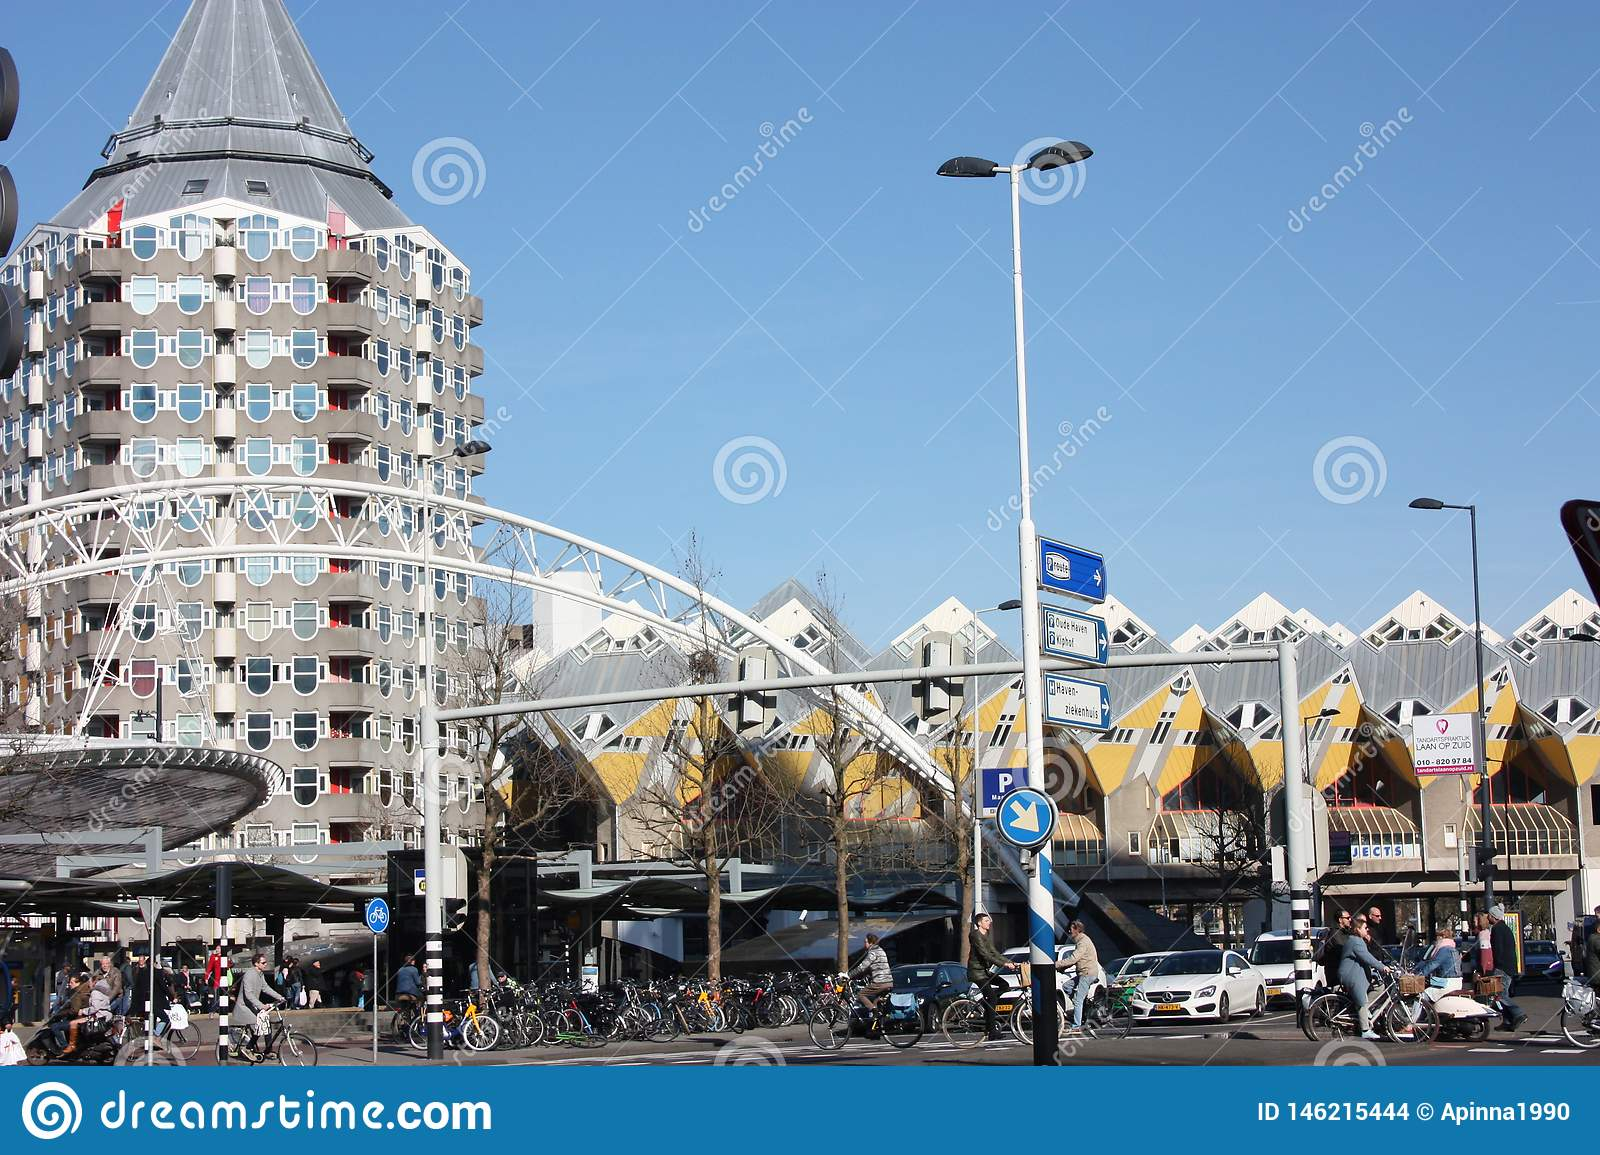 Daily city chaos in the hectic and modern station of the metropolis of Rotterdam. Yellow cubic houses are the decoration of the